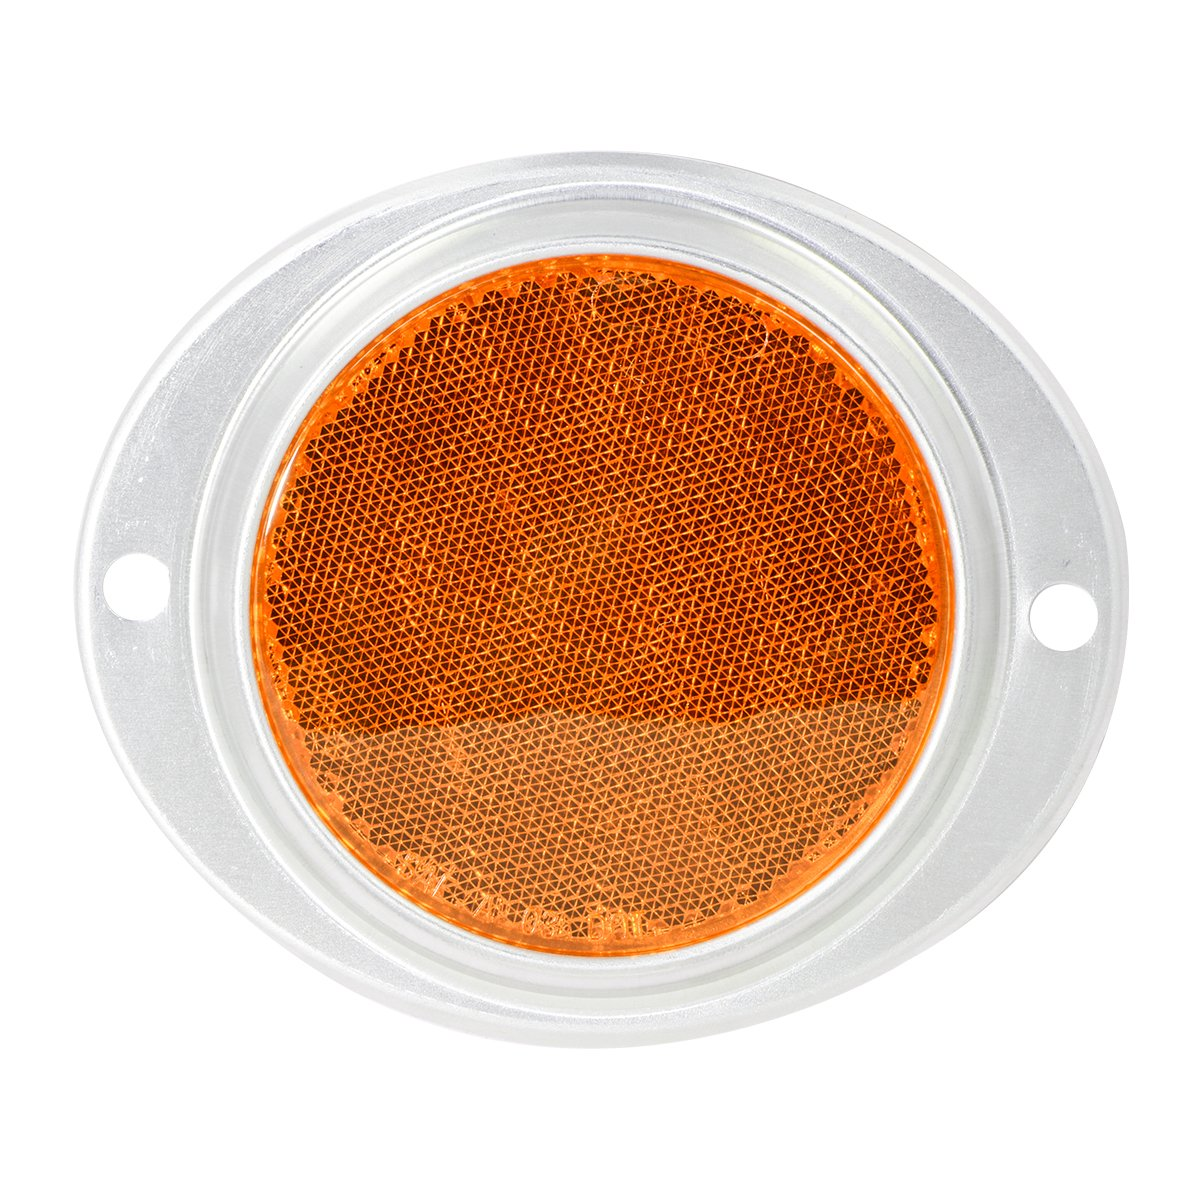 "Grand General 80811 Round Amber 3"" Stick-On Reflector for Trucks, Towing, Trailers, RVs and Buses, 1 Pack"